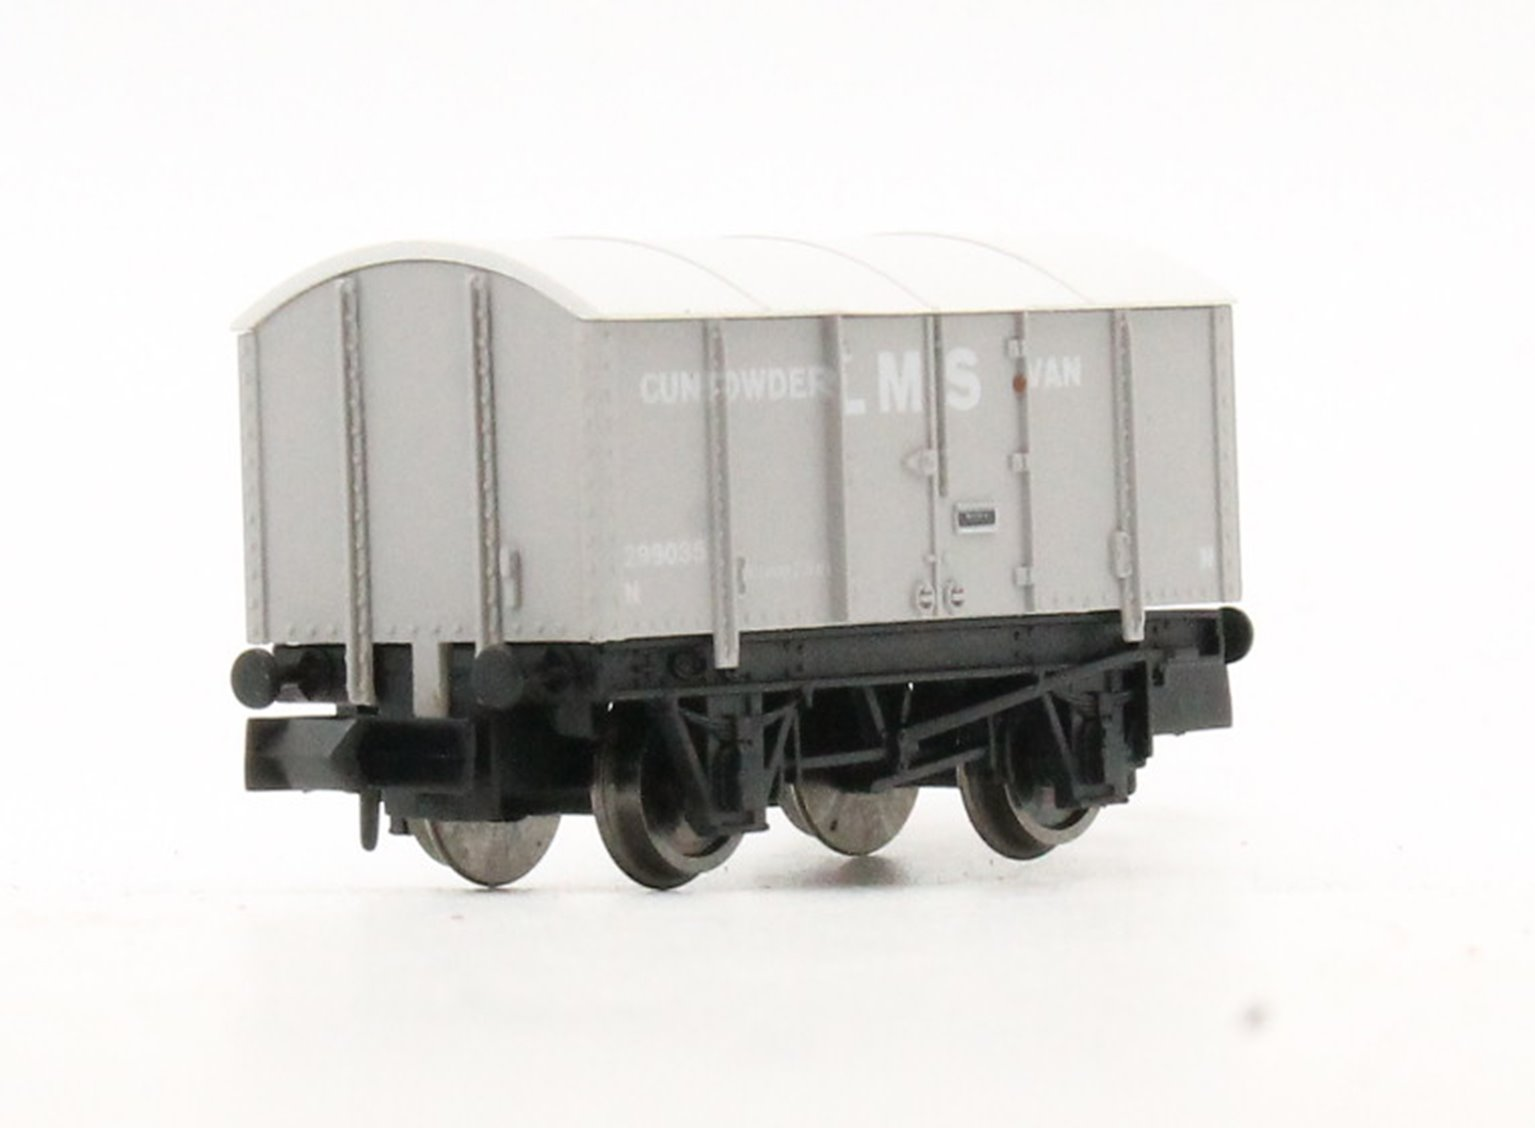 4-wheel Gunpowder Van 299035 in LMS grey